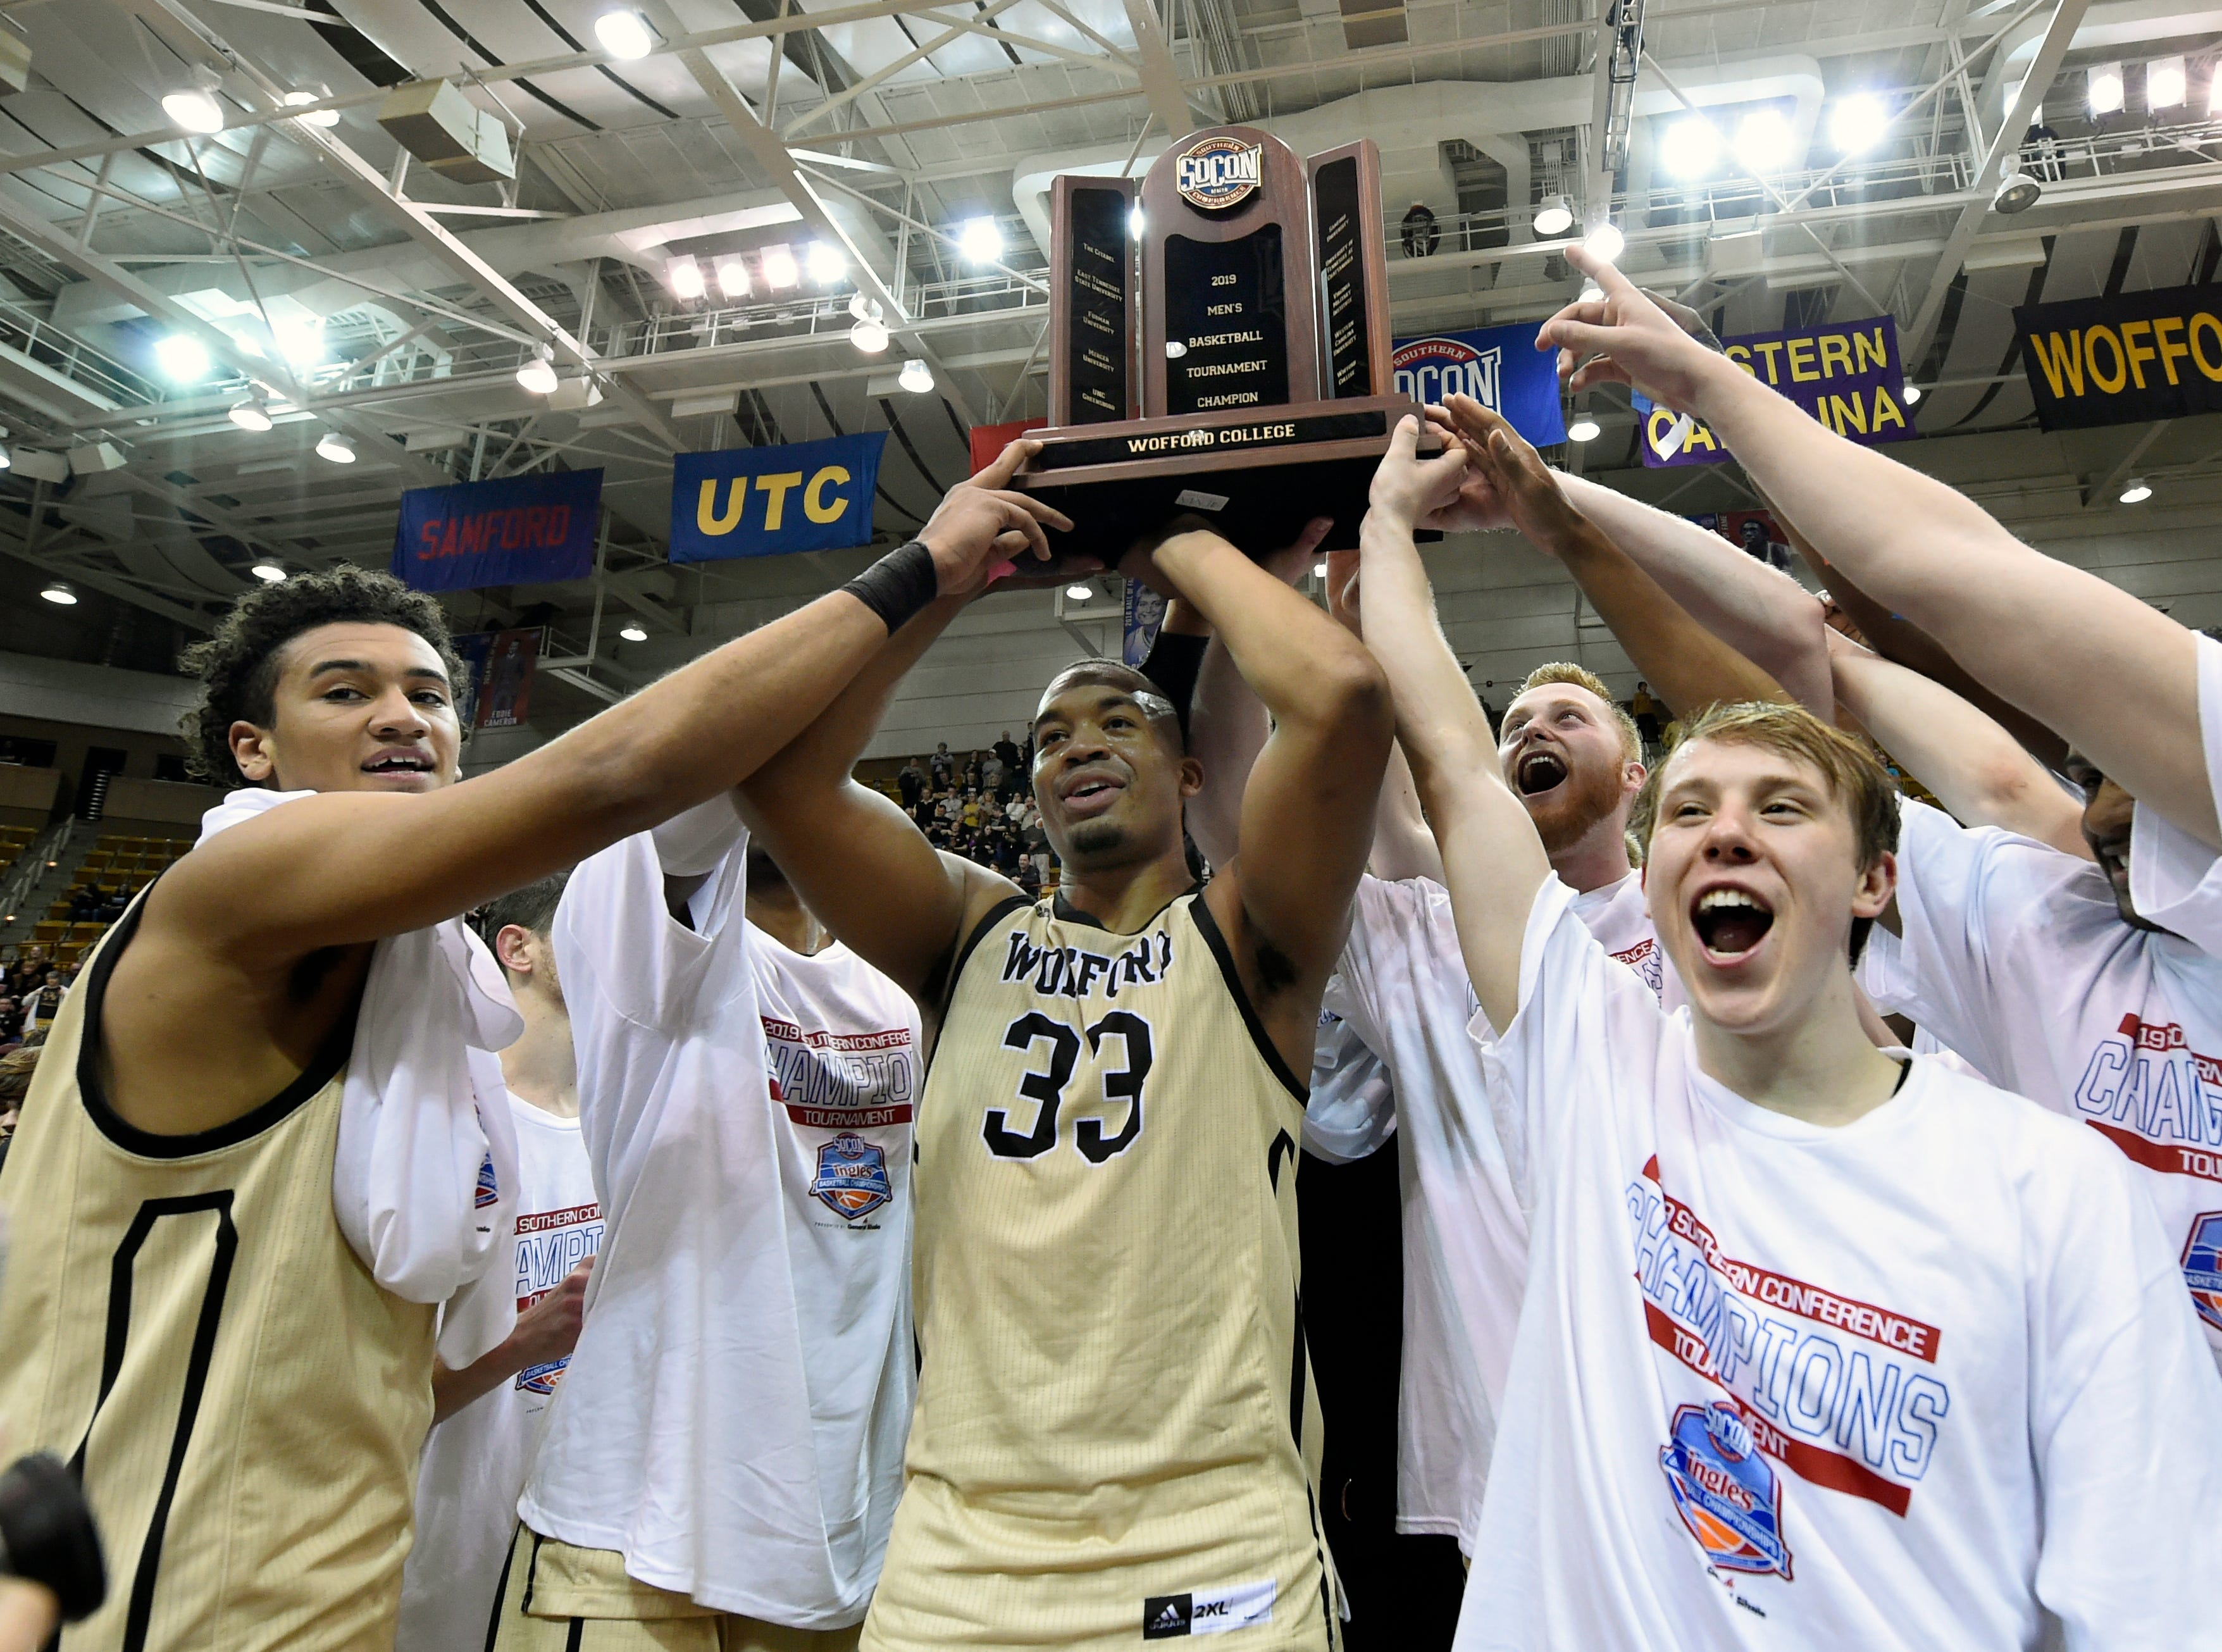 Wofford (29-4), No. 7 seed in Midwest, Southern Conference champion